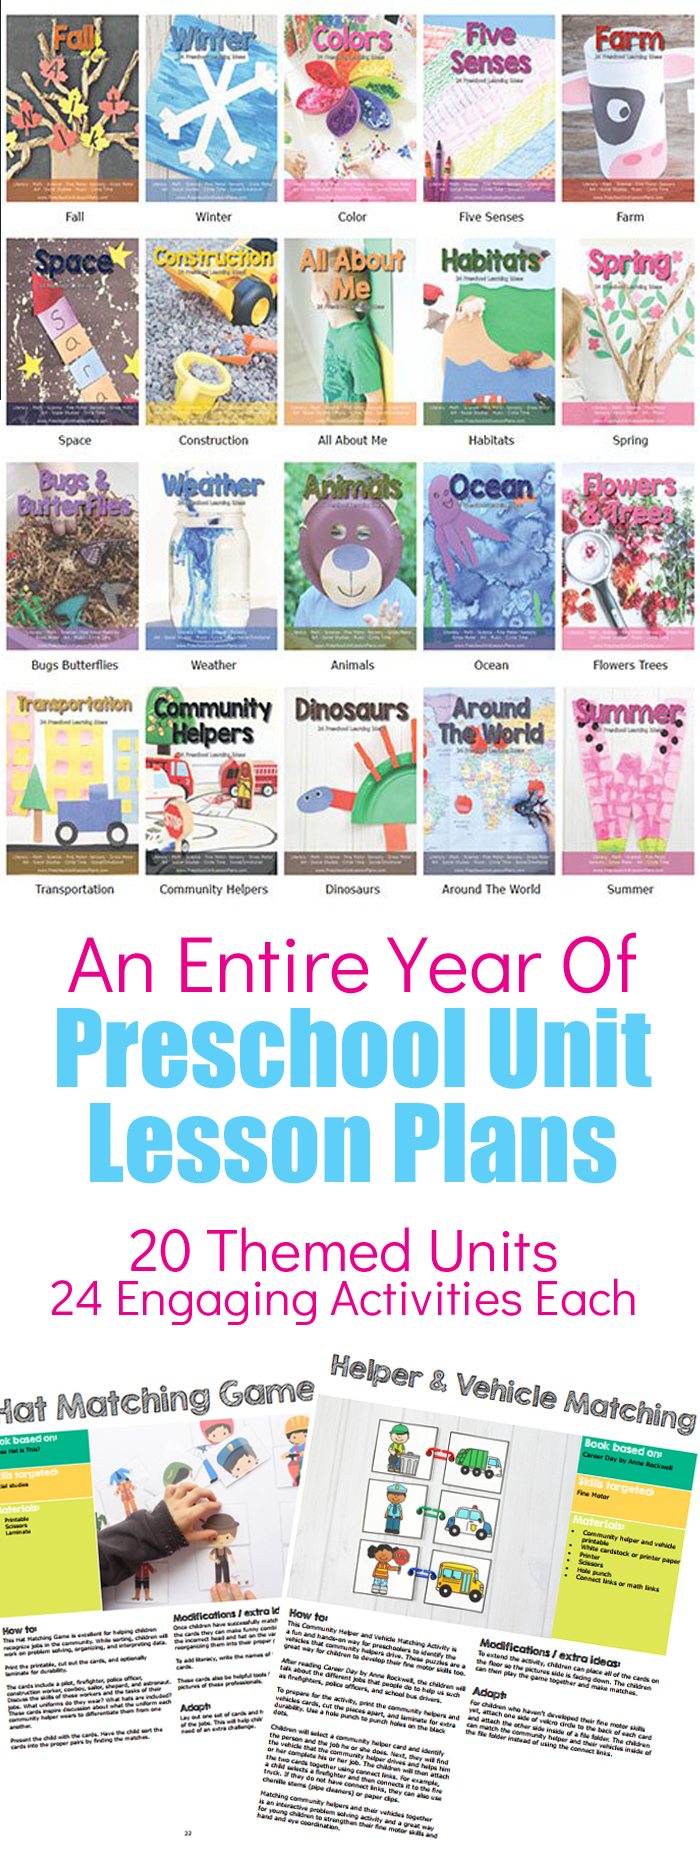 Preschool Themed Units Bundle. 20 Themed Units Each With 24 Hands On, Engaging Activities